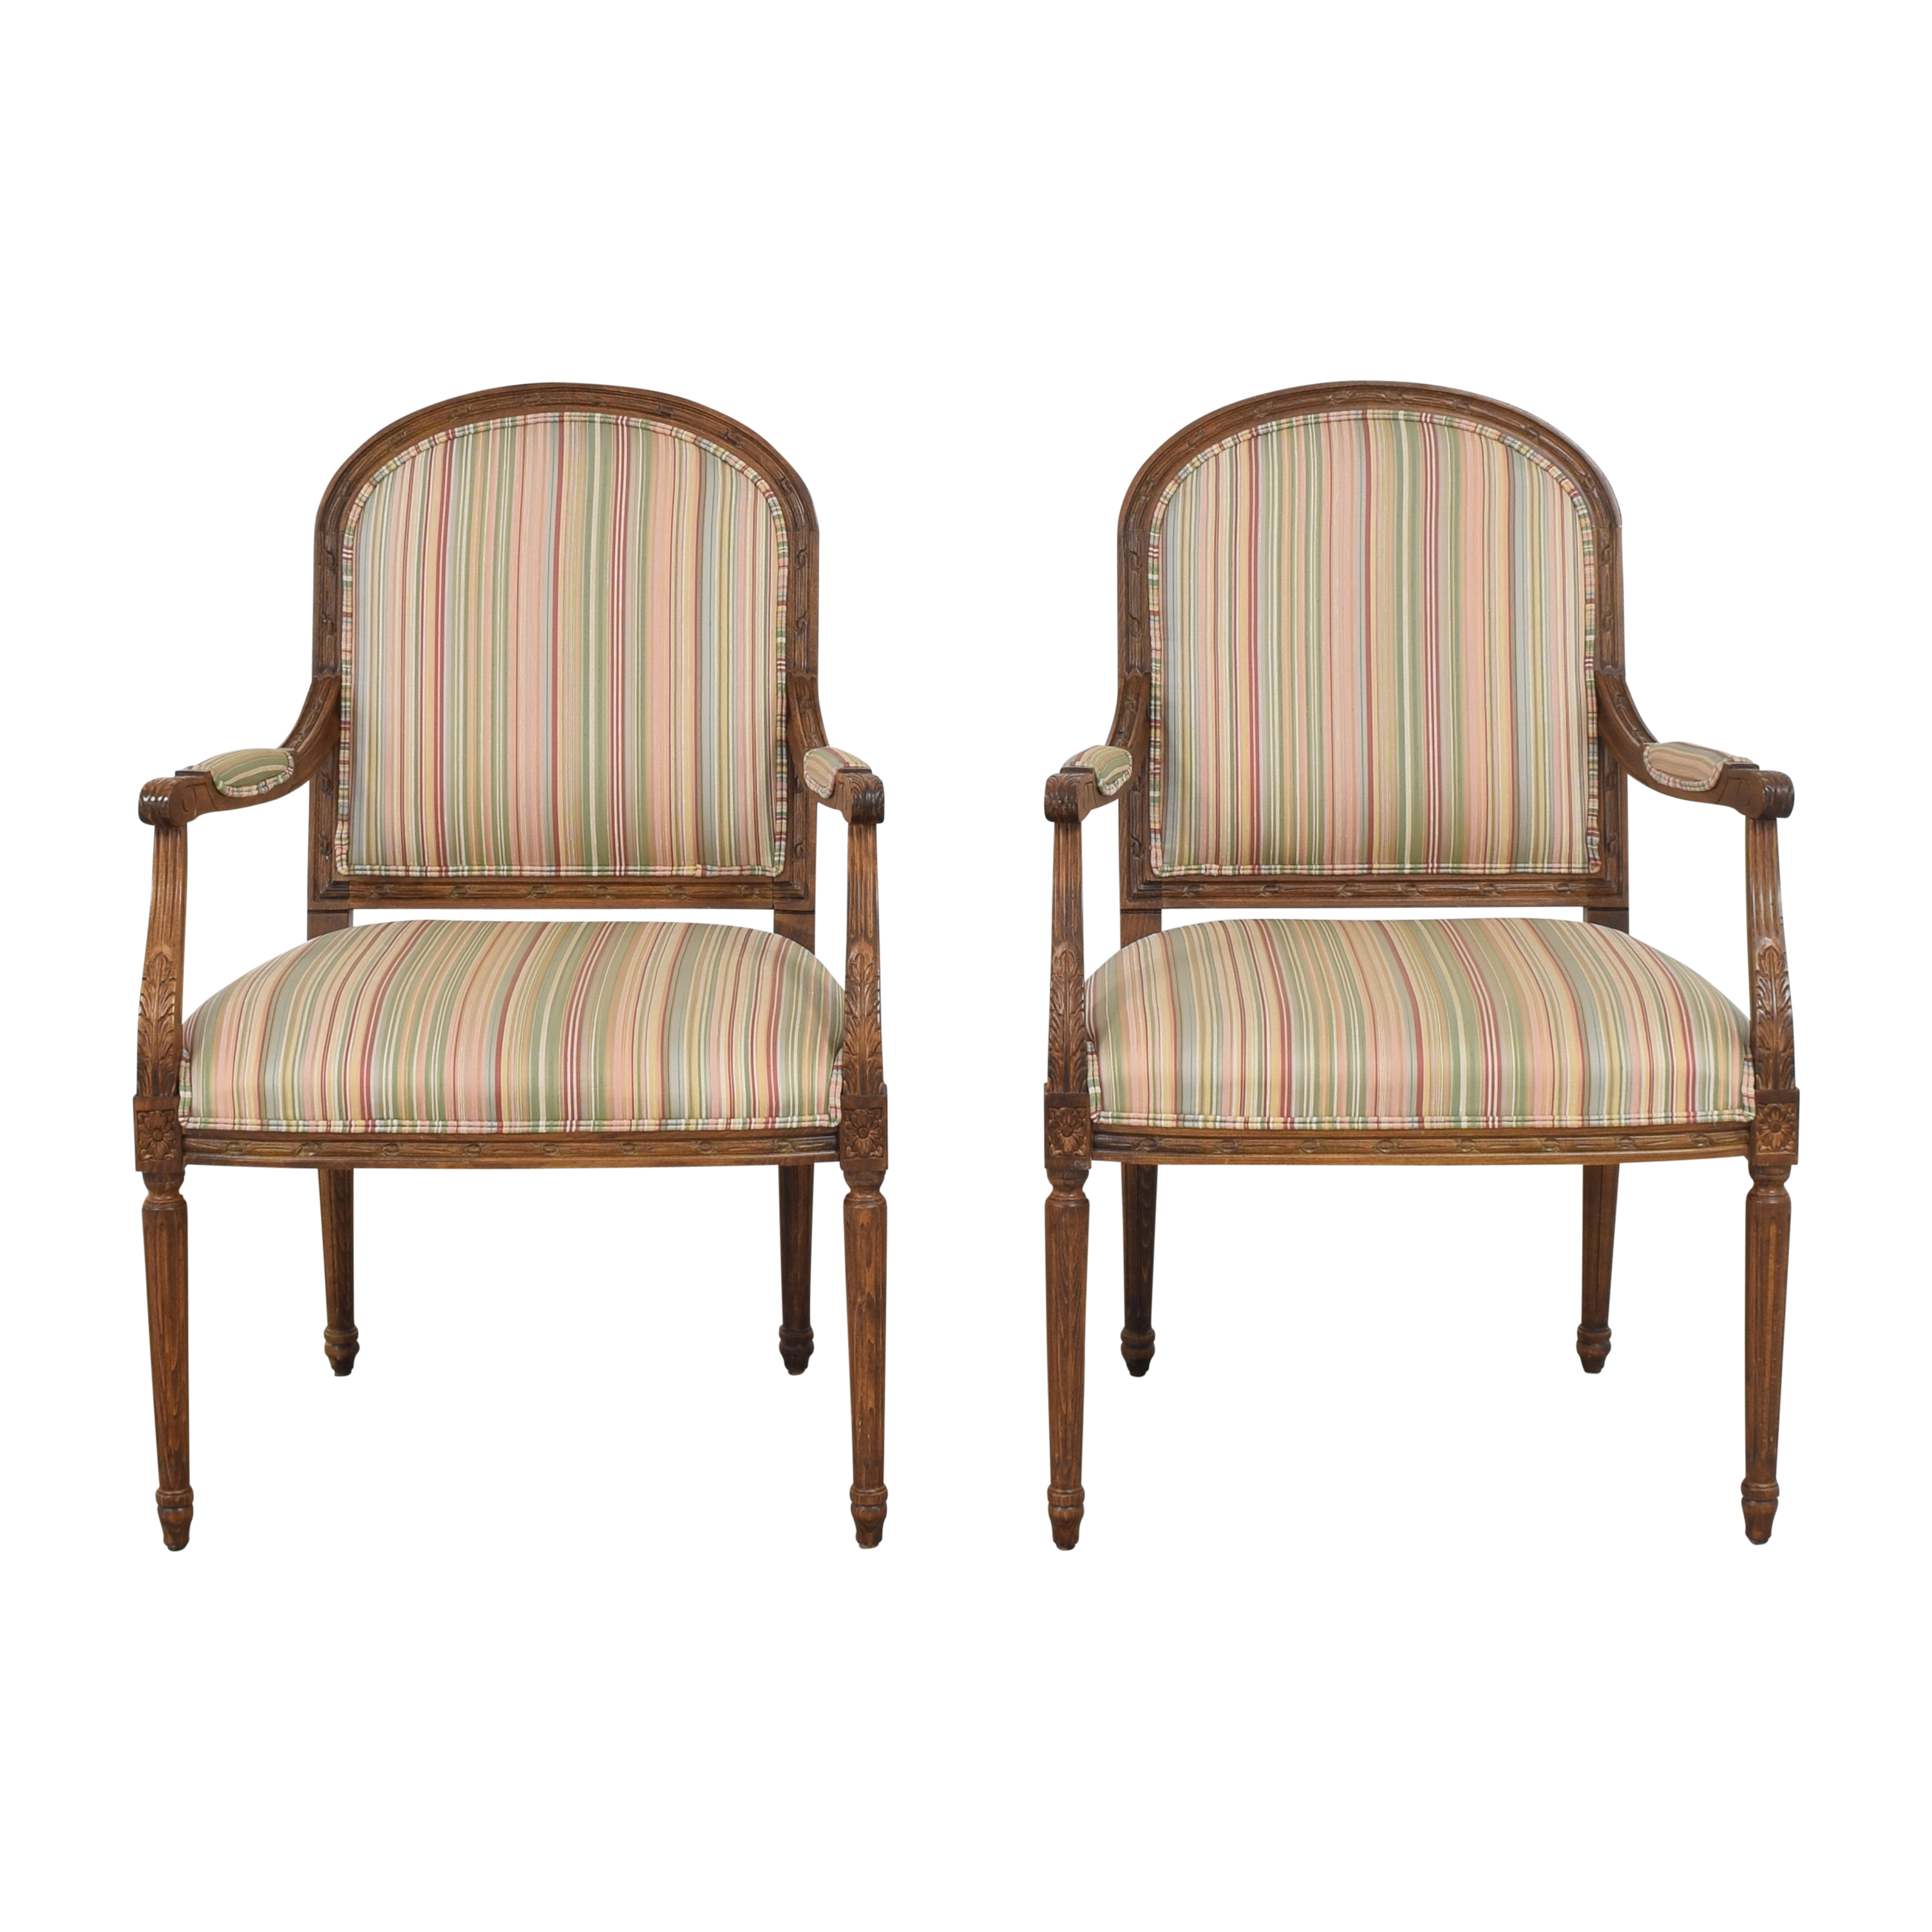 Ethan Allen Ethan Allen Louis XV-Style Arm Chairs ct